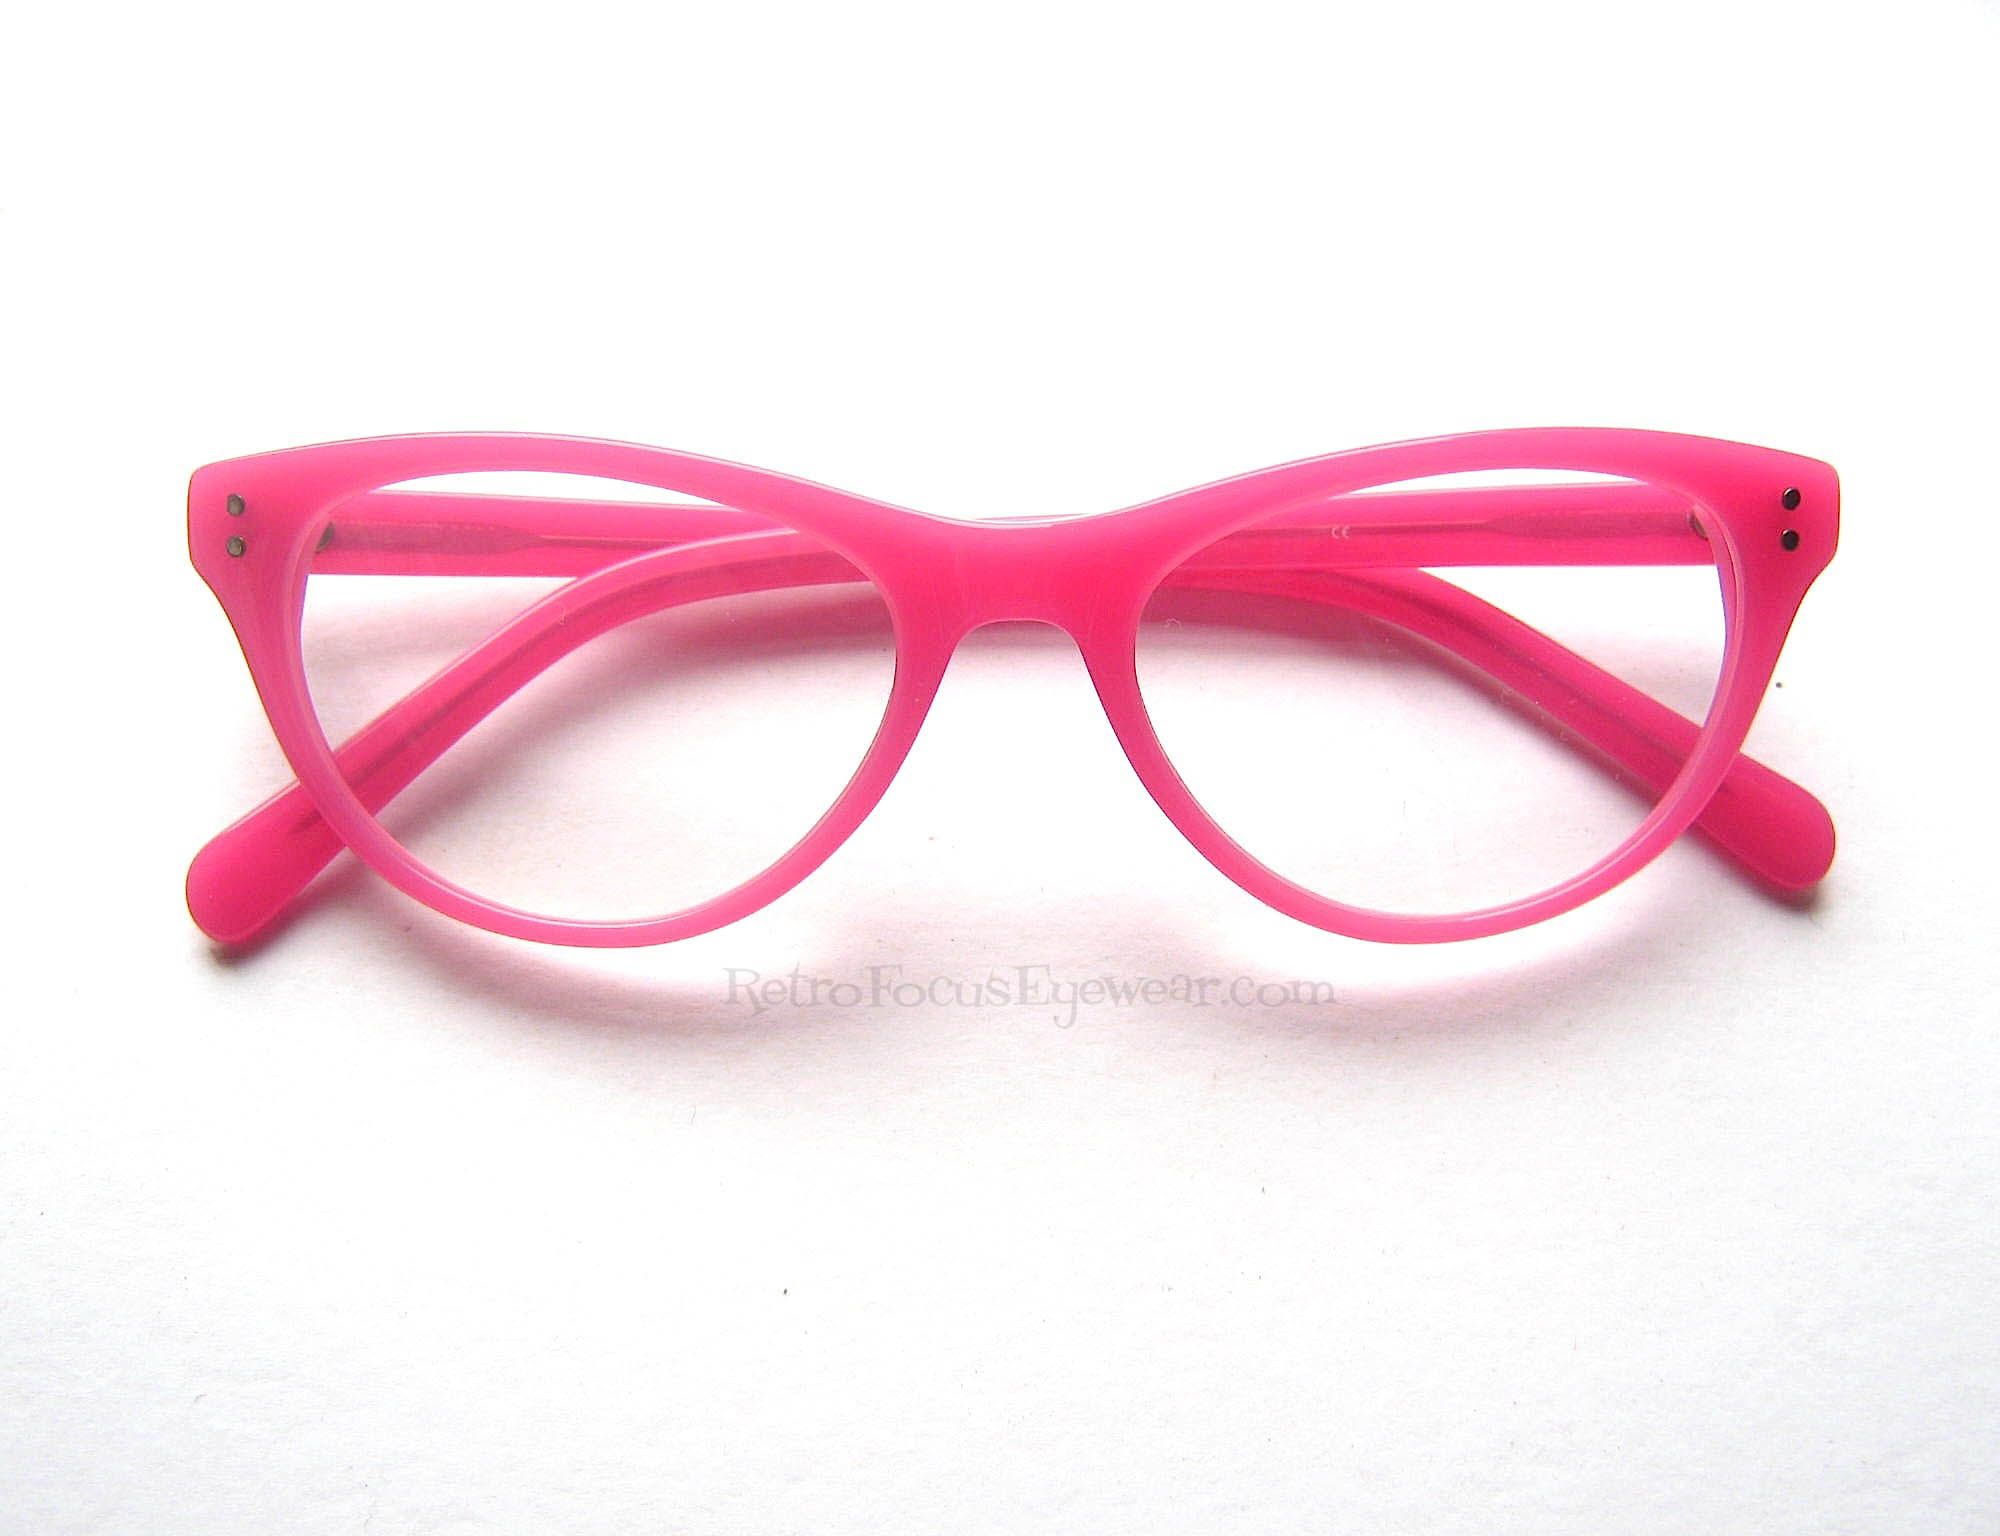 Wicked Cat Eyes - Neon Cat Eye Reader | Retro Focus Eyewear Hot Pink ...